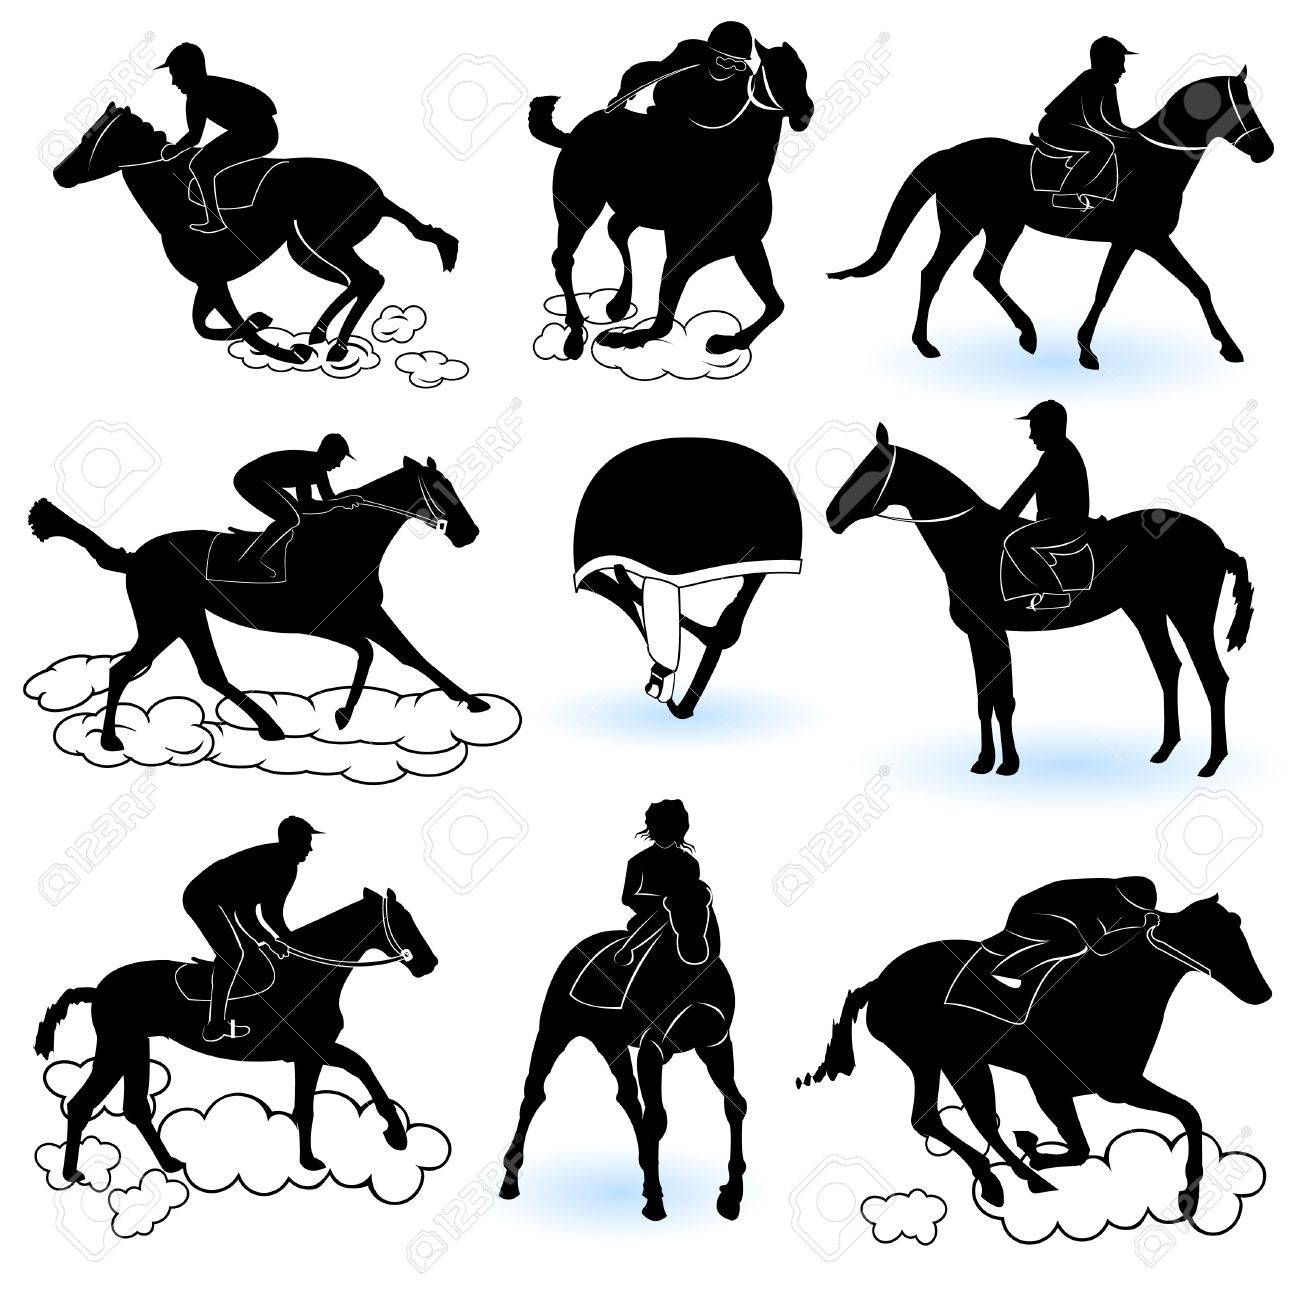 Illustration of 8 different jockey silhouettes, and a jockey cap Stock Vector - 9717827